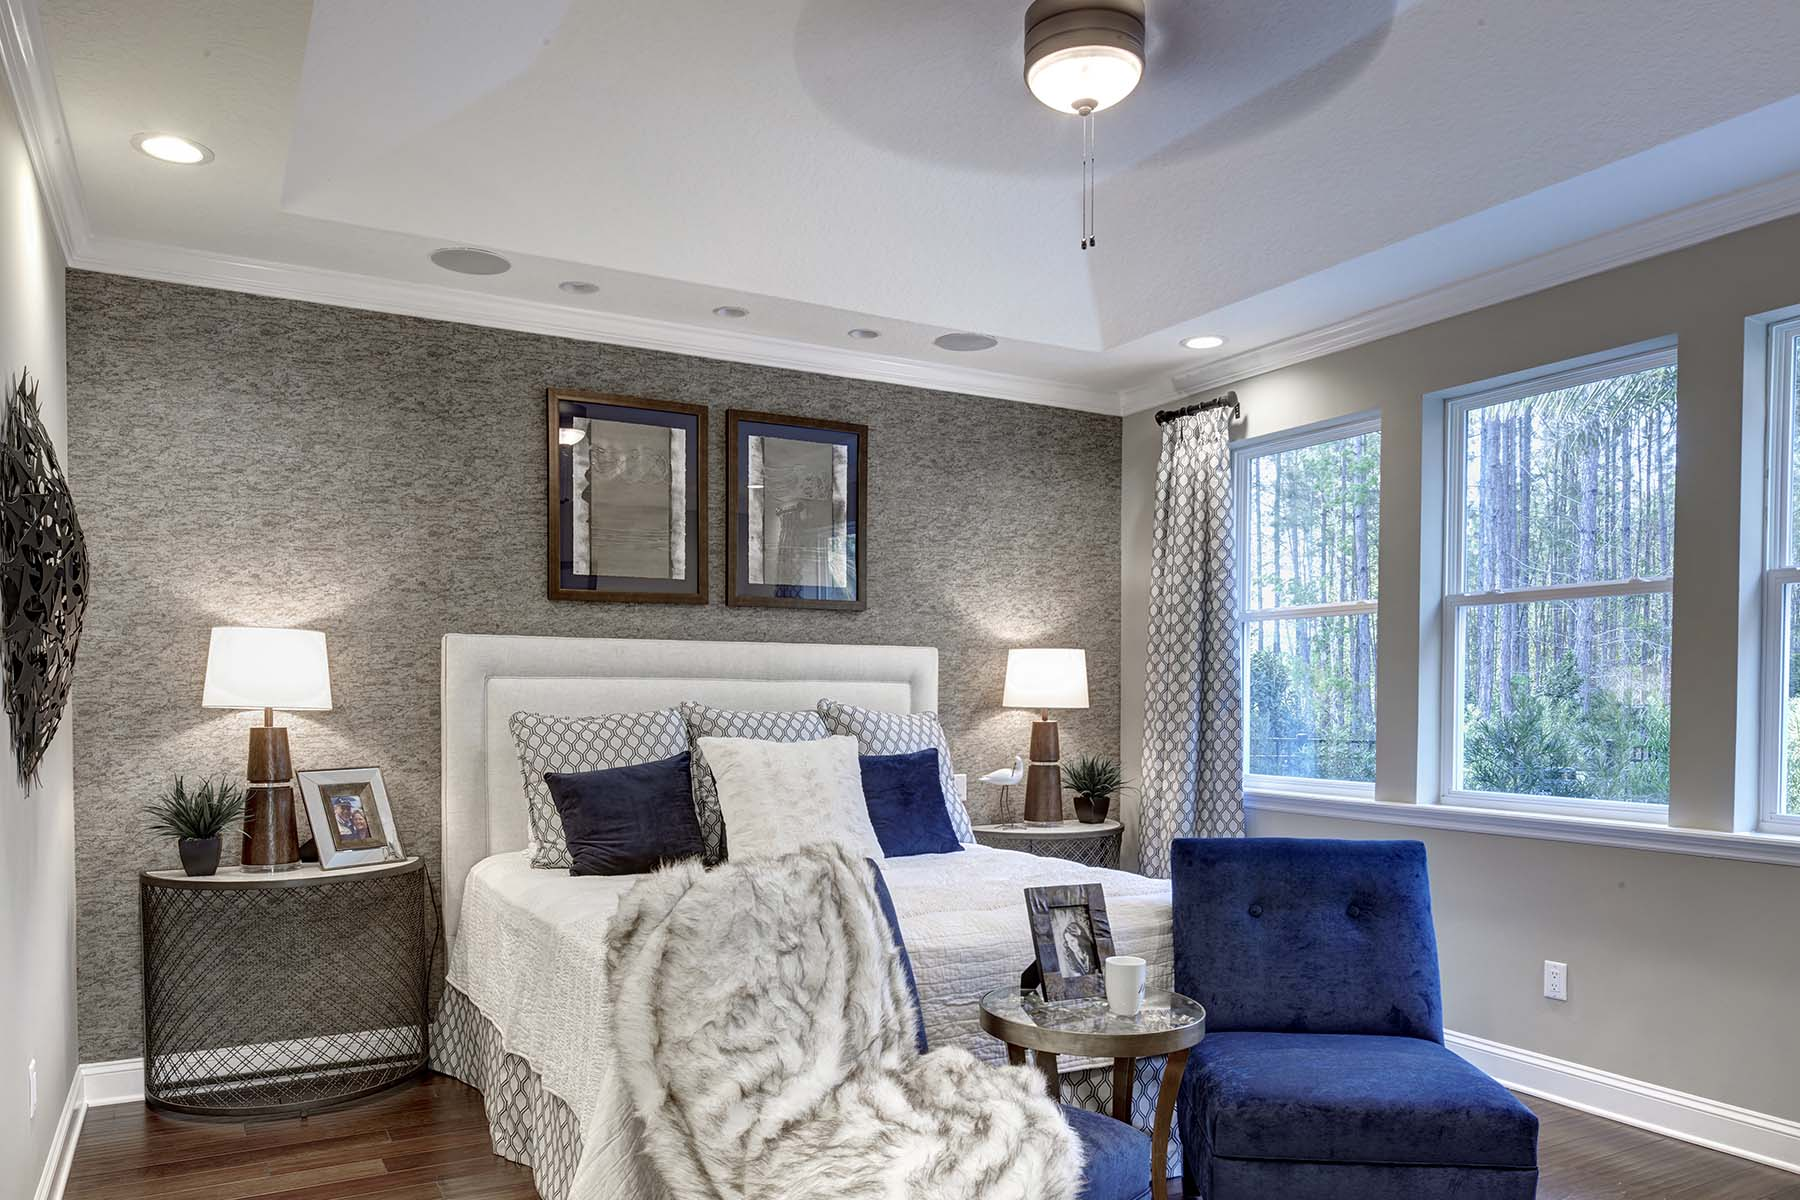 Beauclair Plan Bedroom at RiverTown - Arbors in St. Johns Florida by Mattamy Homes